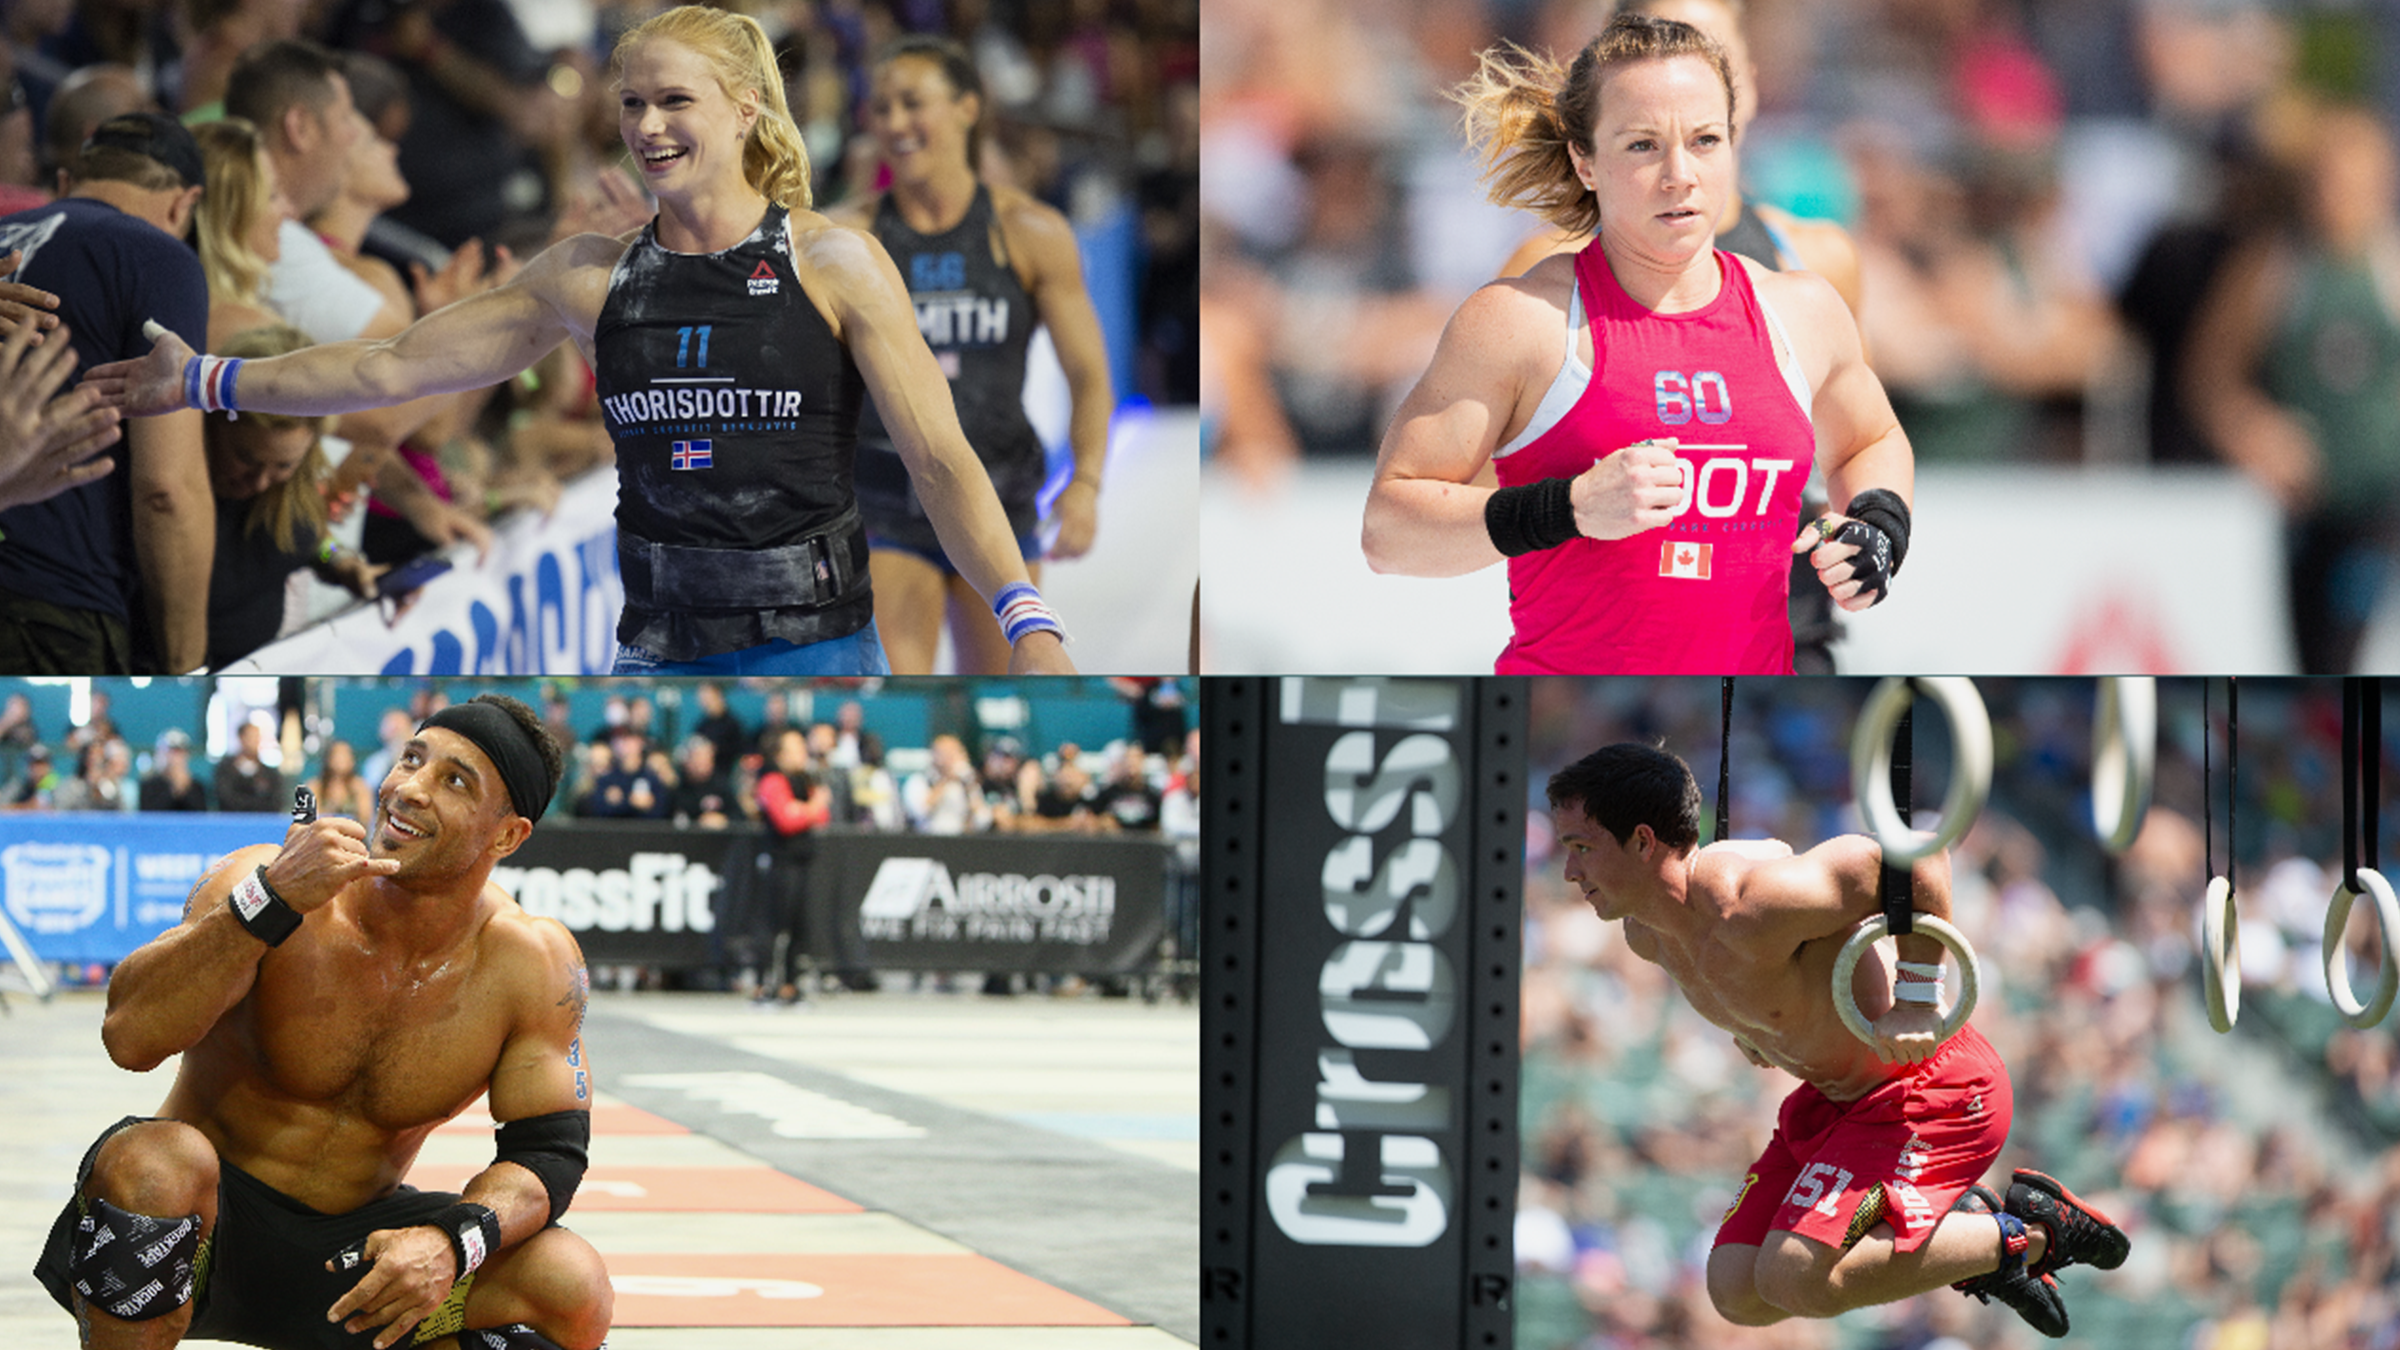 Member's of CrossFit's Athlete Advisory Council